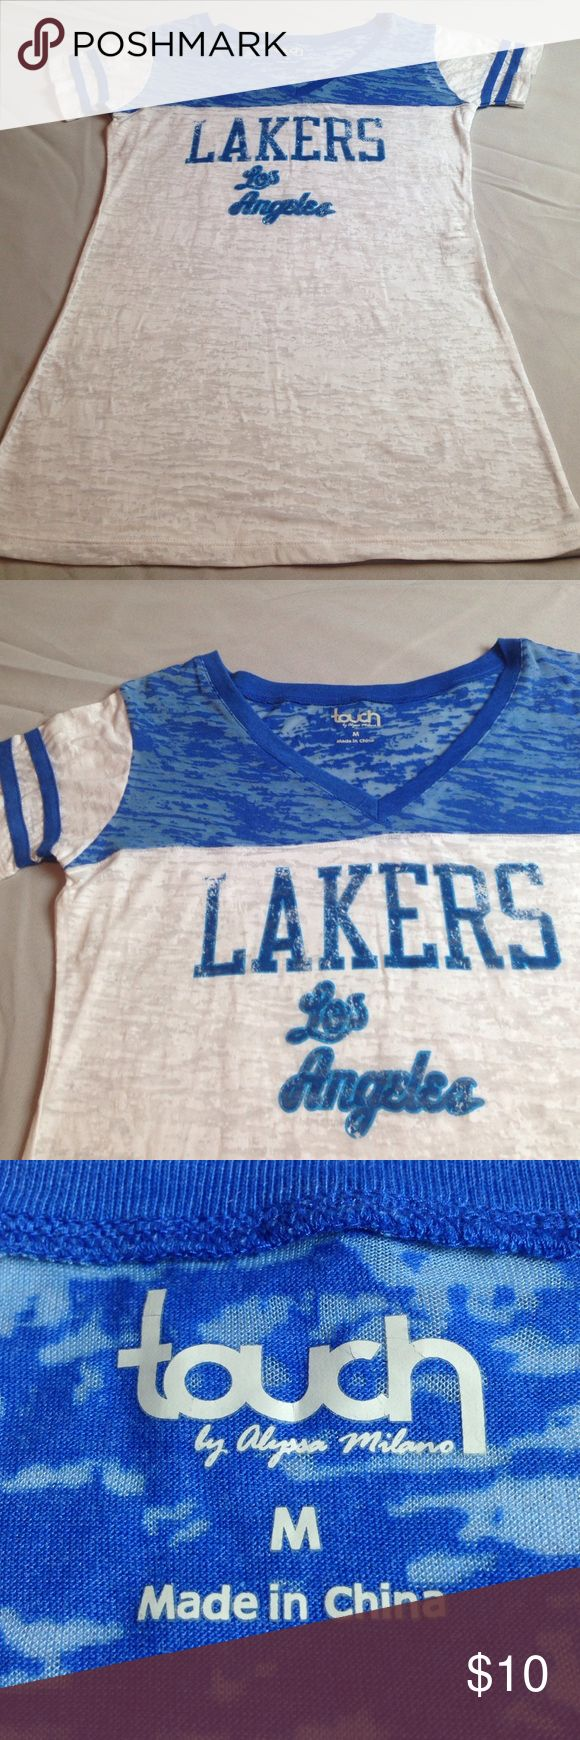 NBA LAKERS LOS ANGELES TEAM TOP TEE EXCELLENT CUTE NBA LAKERS LOS ANGELES TEAM TOP TEE EXCELLENT CONDITION Size M Women's LIKE NEW Very  Cute TOUCH BY ALYSA MILANO Tops Tees - Short Sleeve